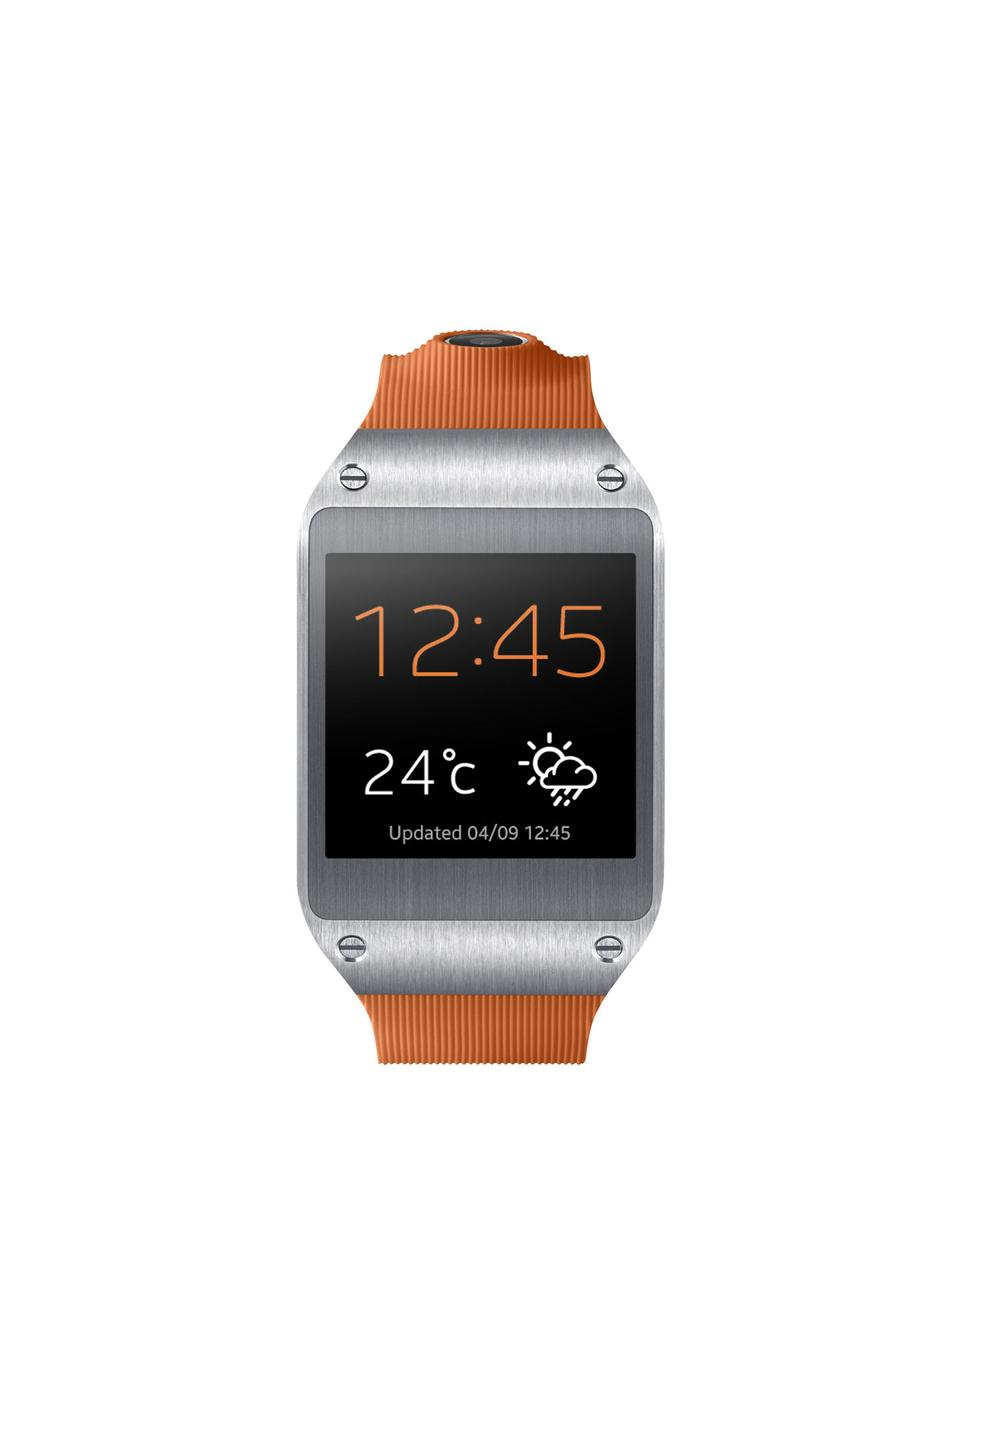 Samsung's  new Galaxy Gear has  already been released to consumers  for purchase